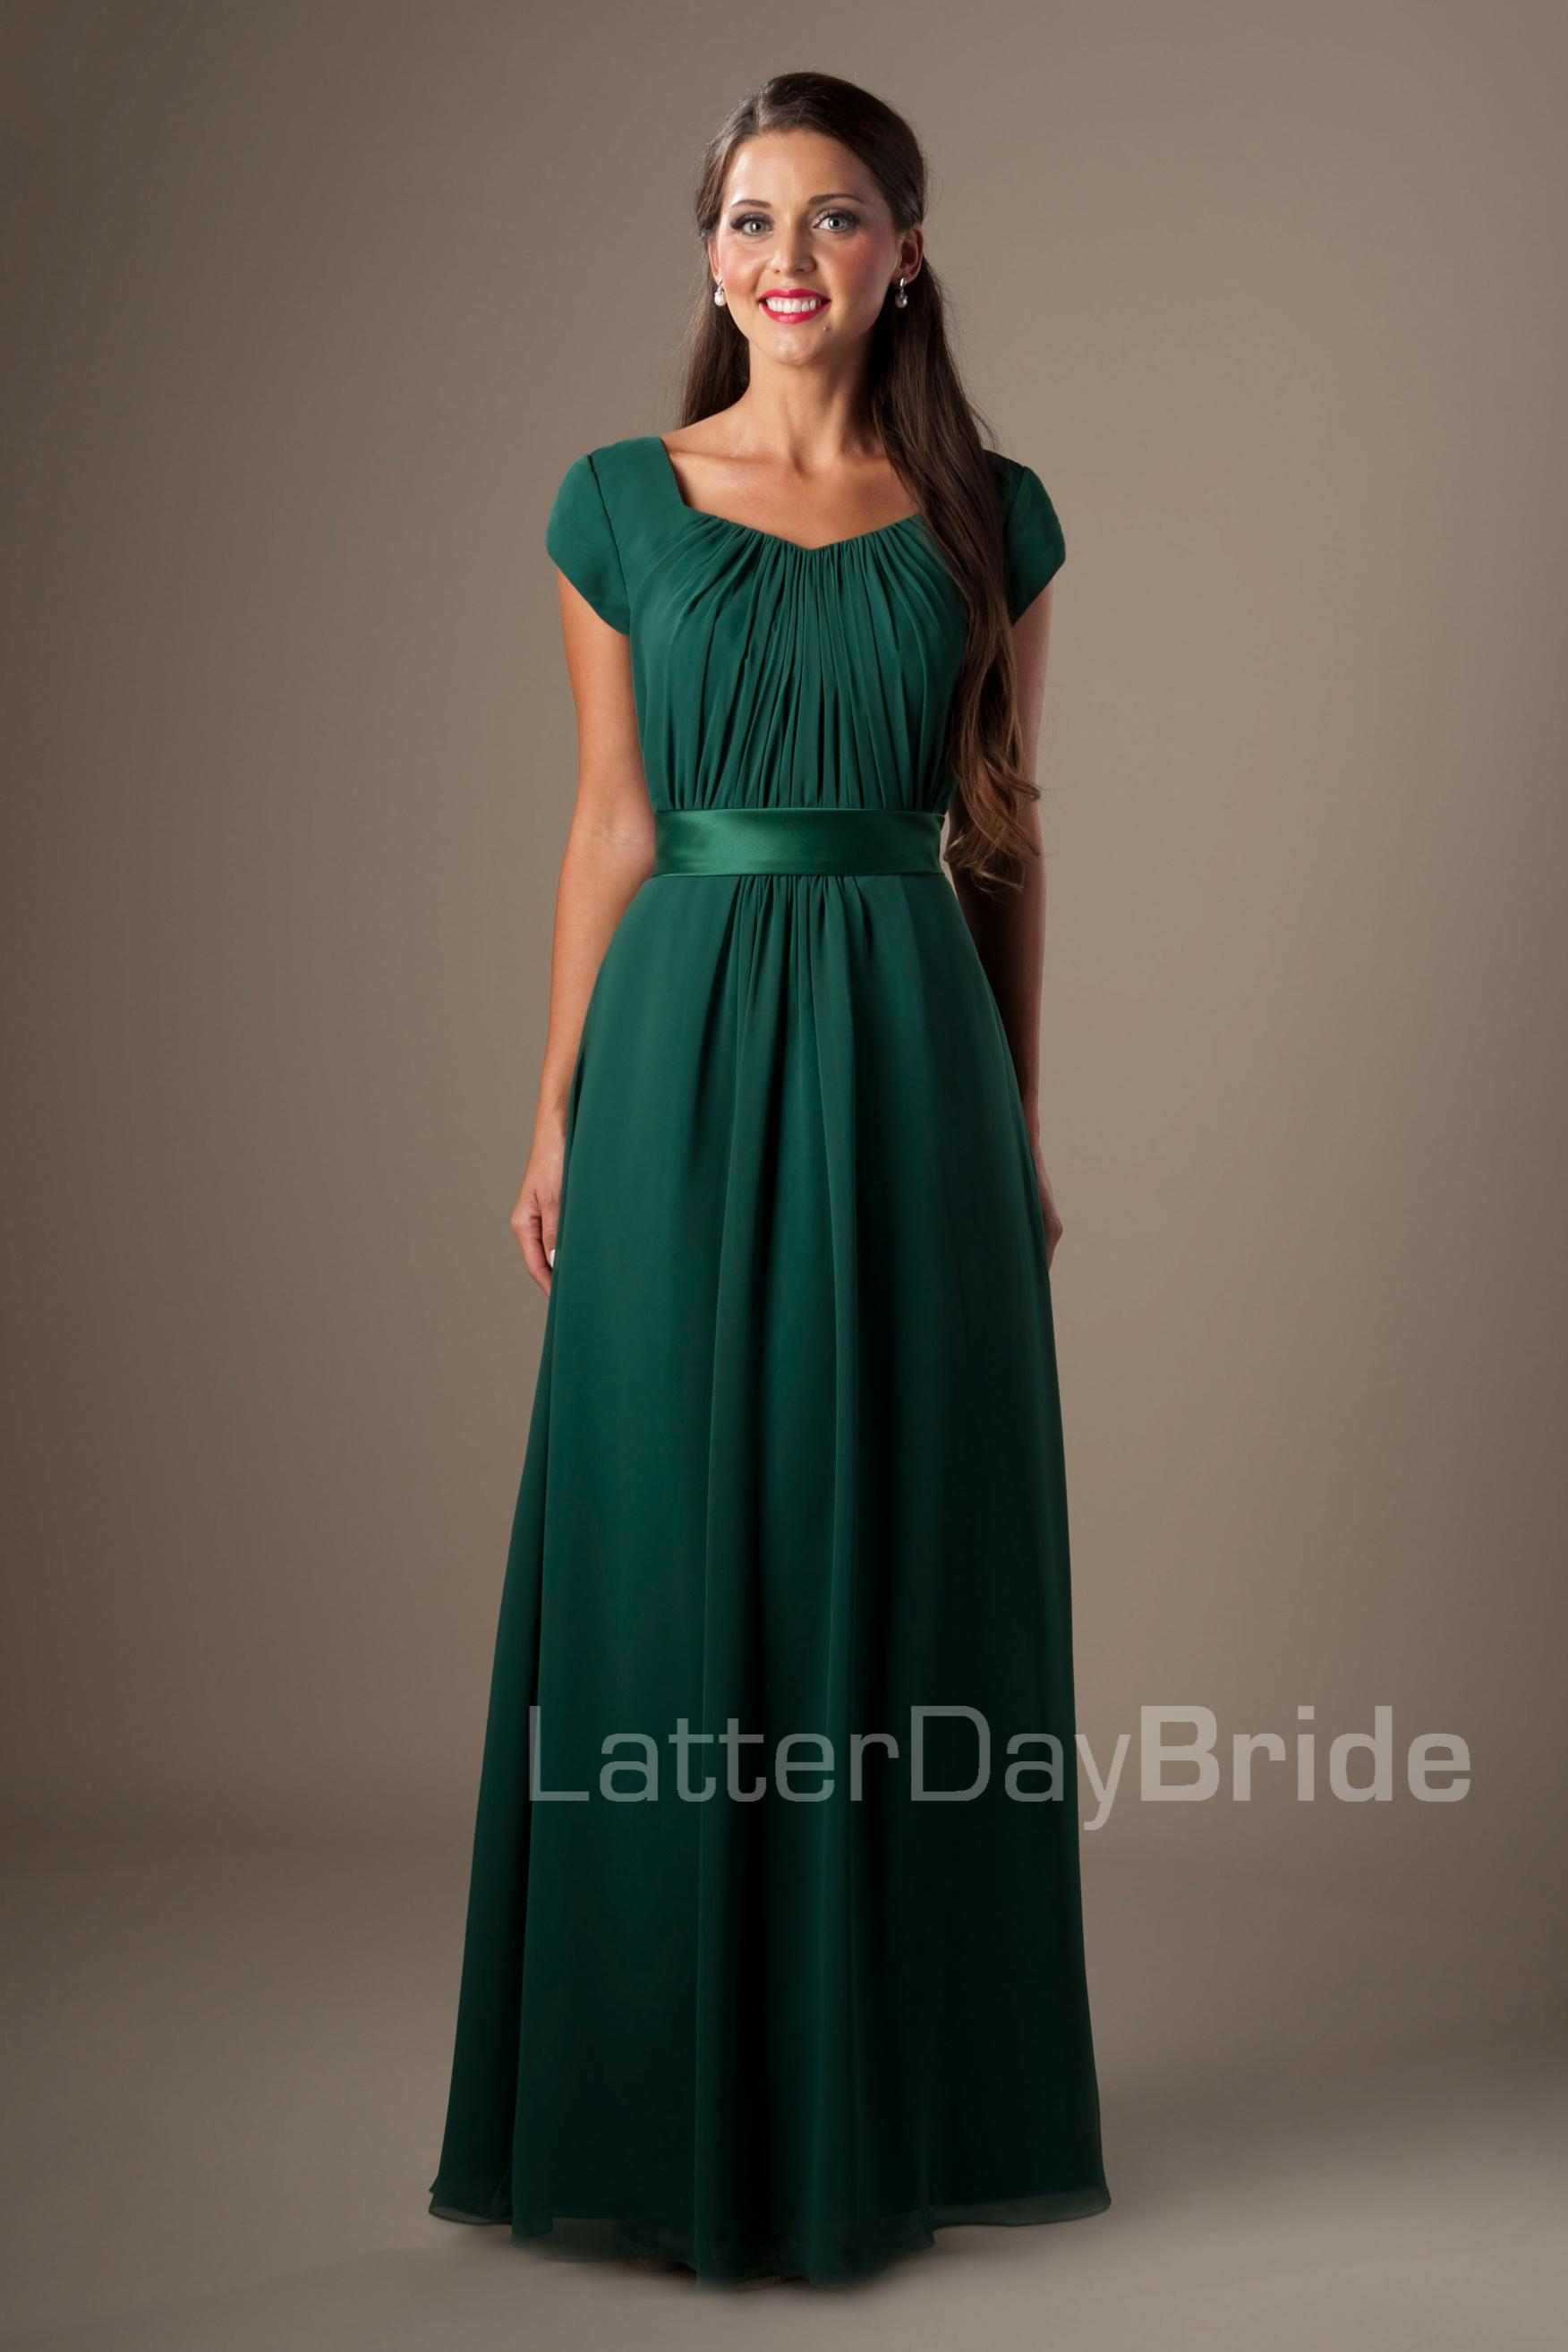 Green Long Chiffon Modest Bridesmaid Dresses With Short Sleeves A-line Temple Wedding Guests Dresses A-line Floor Maids of Honor Dresses